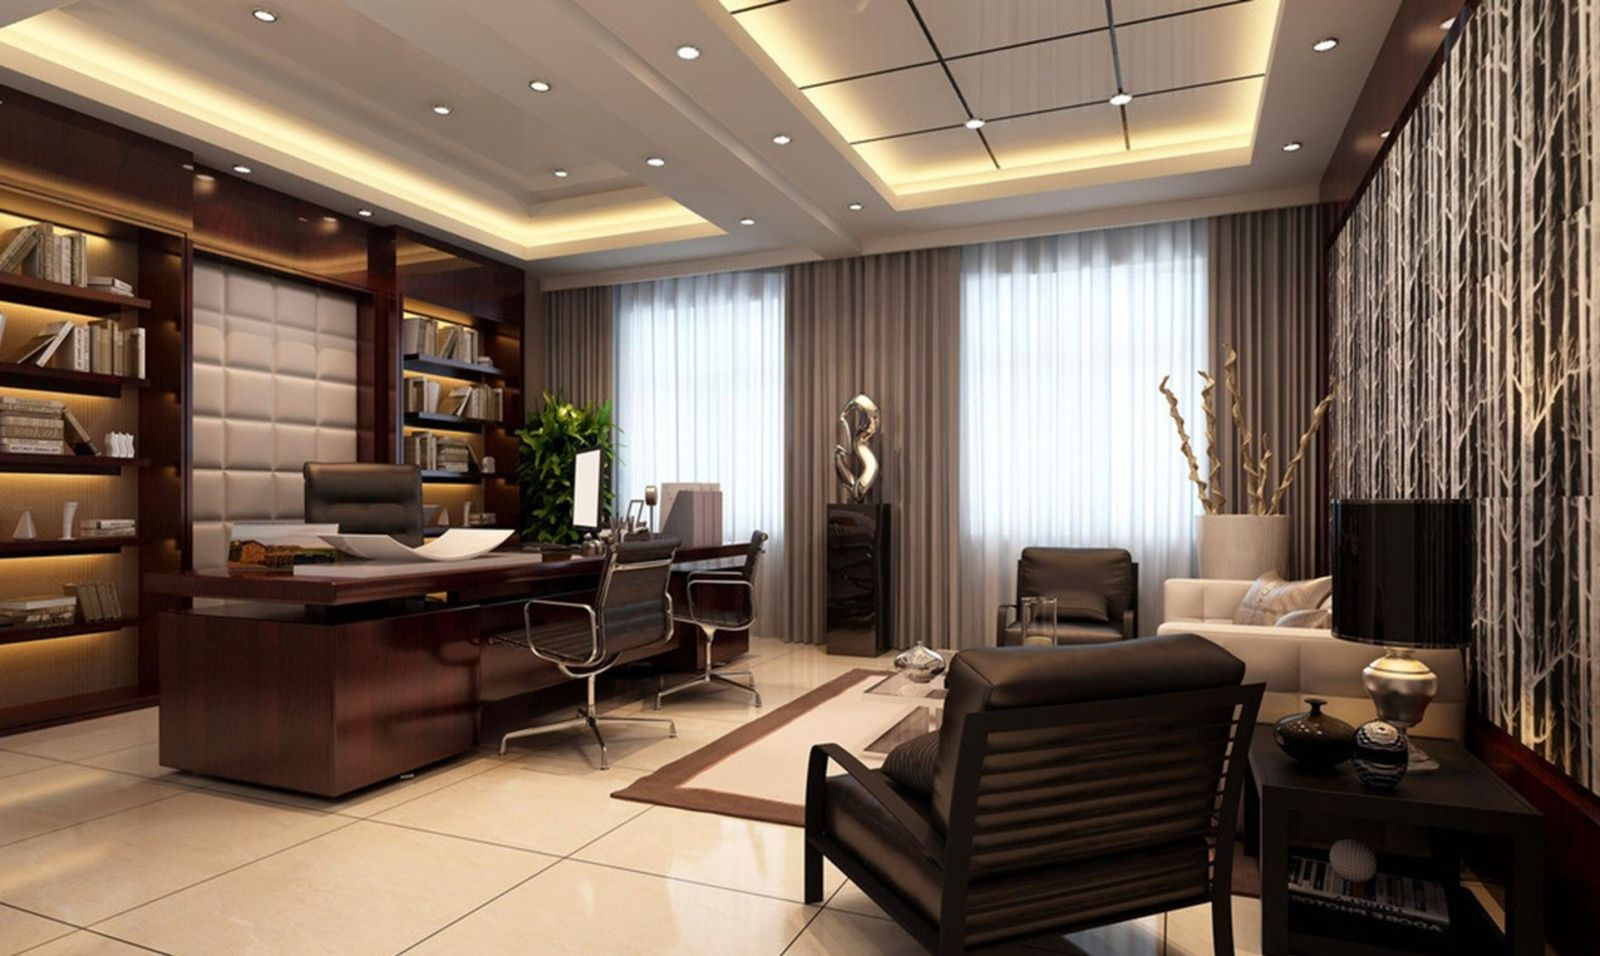 Modern ceo office interior design with executive office for Interior design pictures